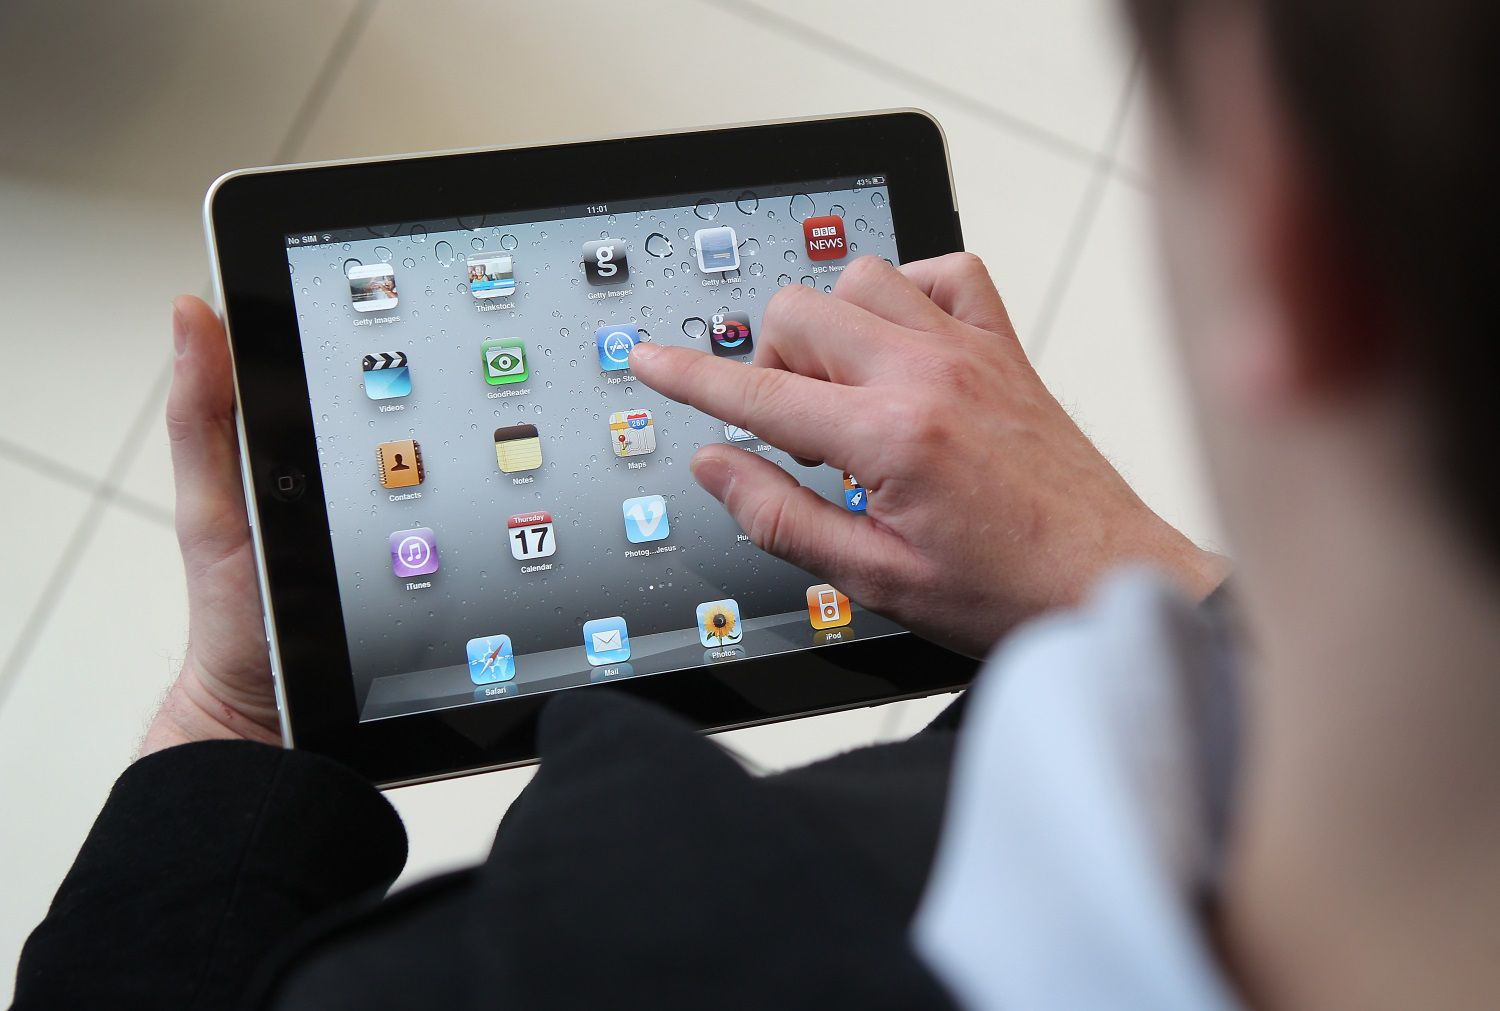 8 Hidden iPad Secrets That Will Turn You Into a Pro